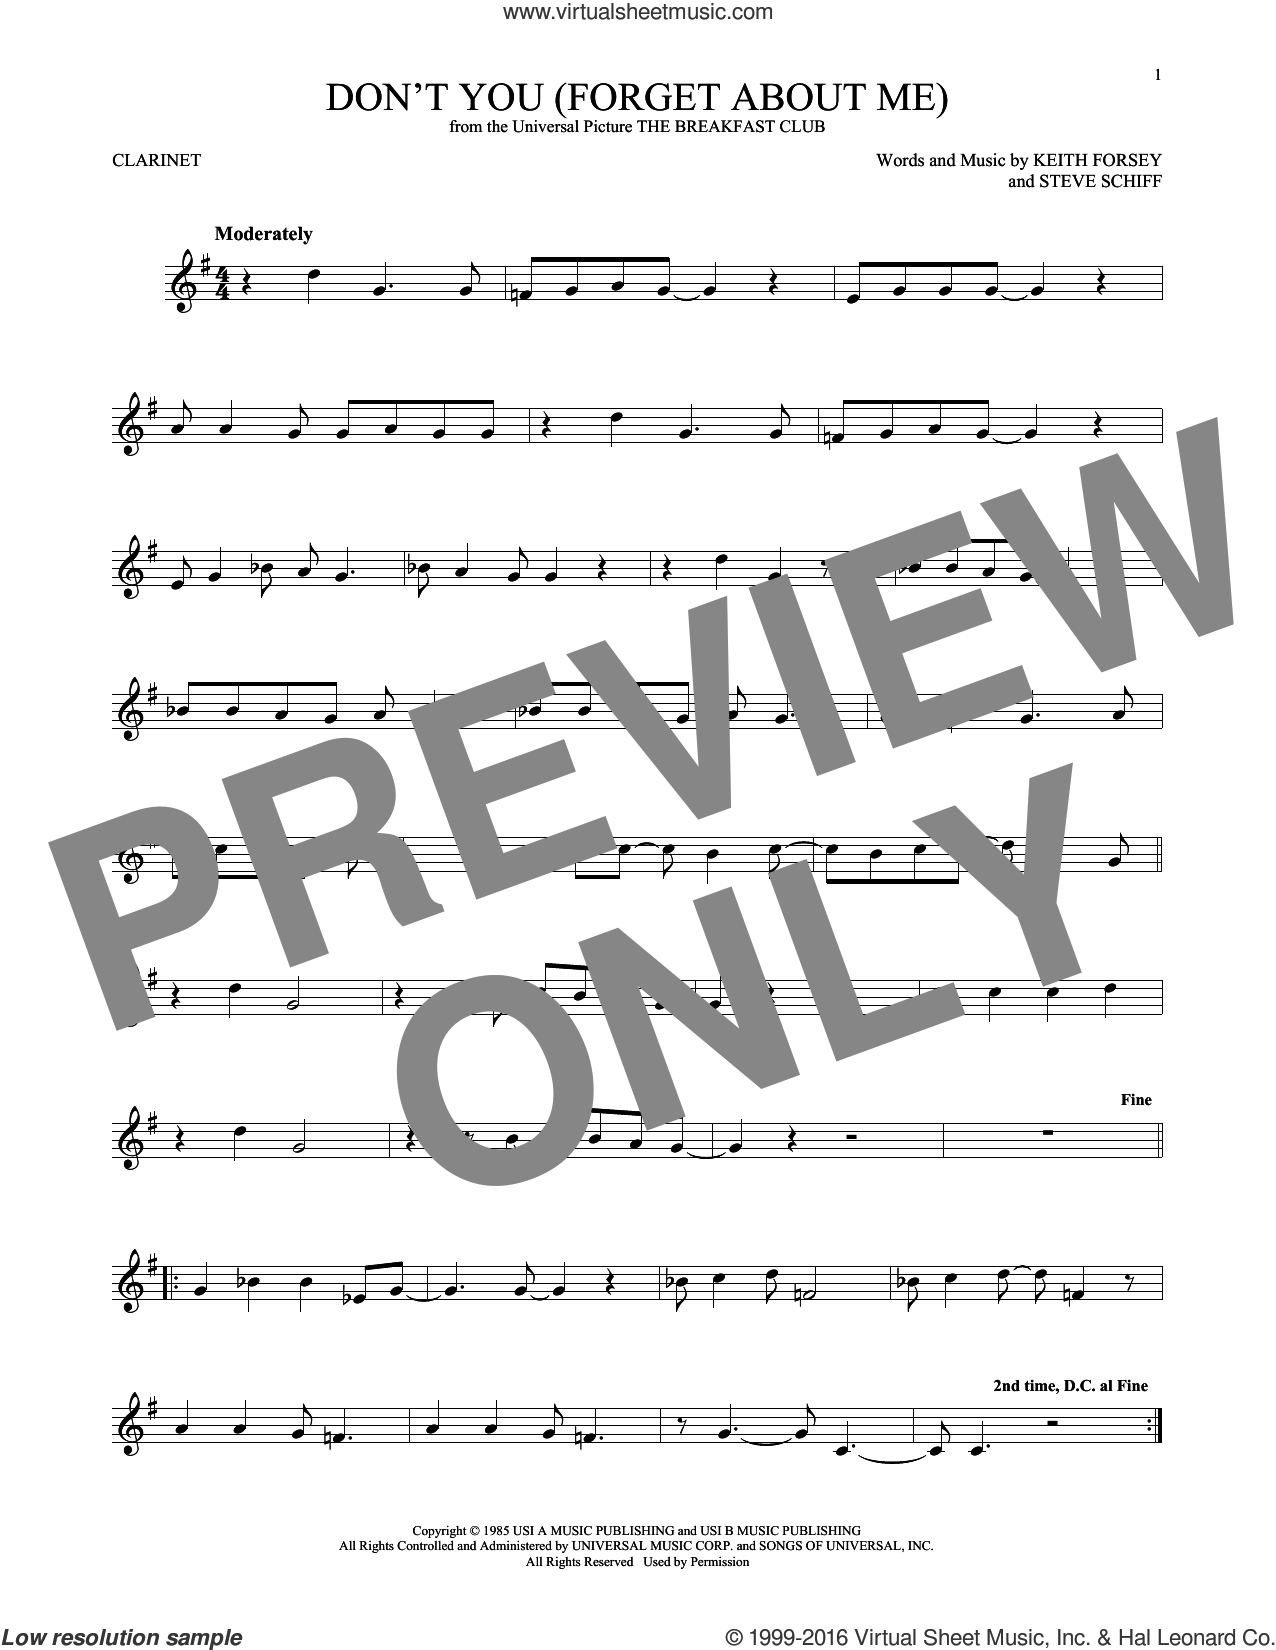 Don't You (Forget About Me) sheet music for clarinet solo by Simple Minds, Hawk Nelson and Keith Forsey. Score Image Preview.